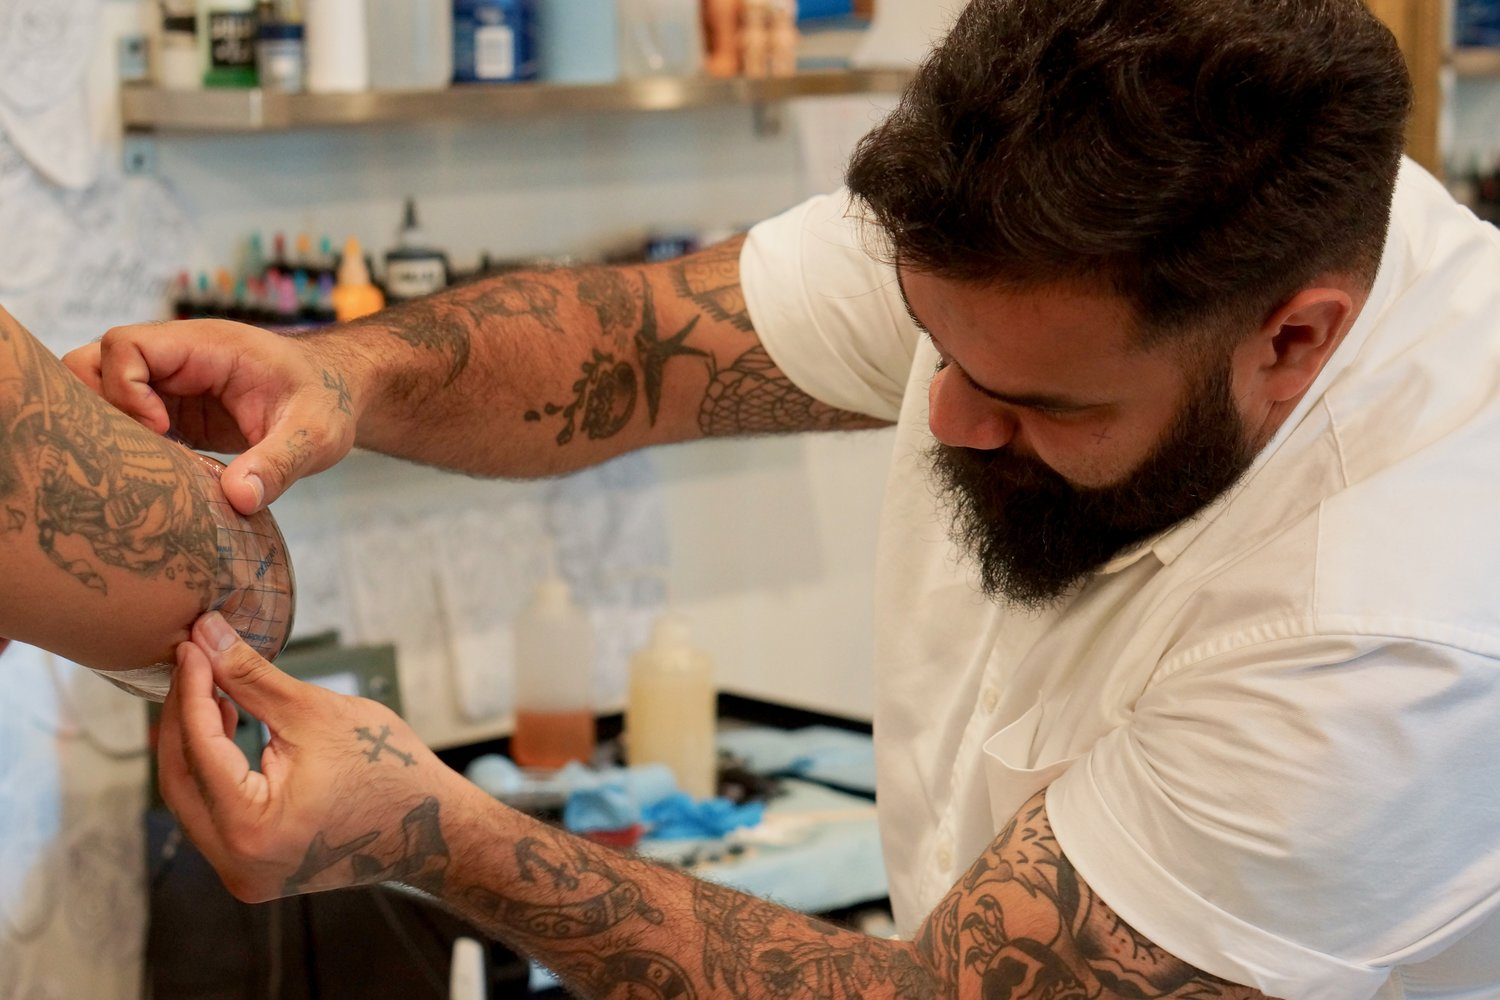 German is a traditional tattoo artist in Toronto. Find him on pick the ink. @germanshible.